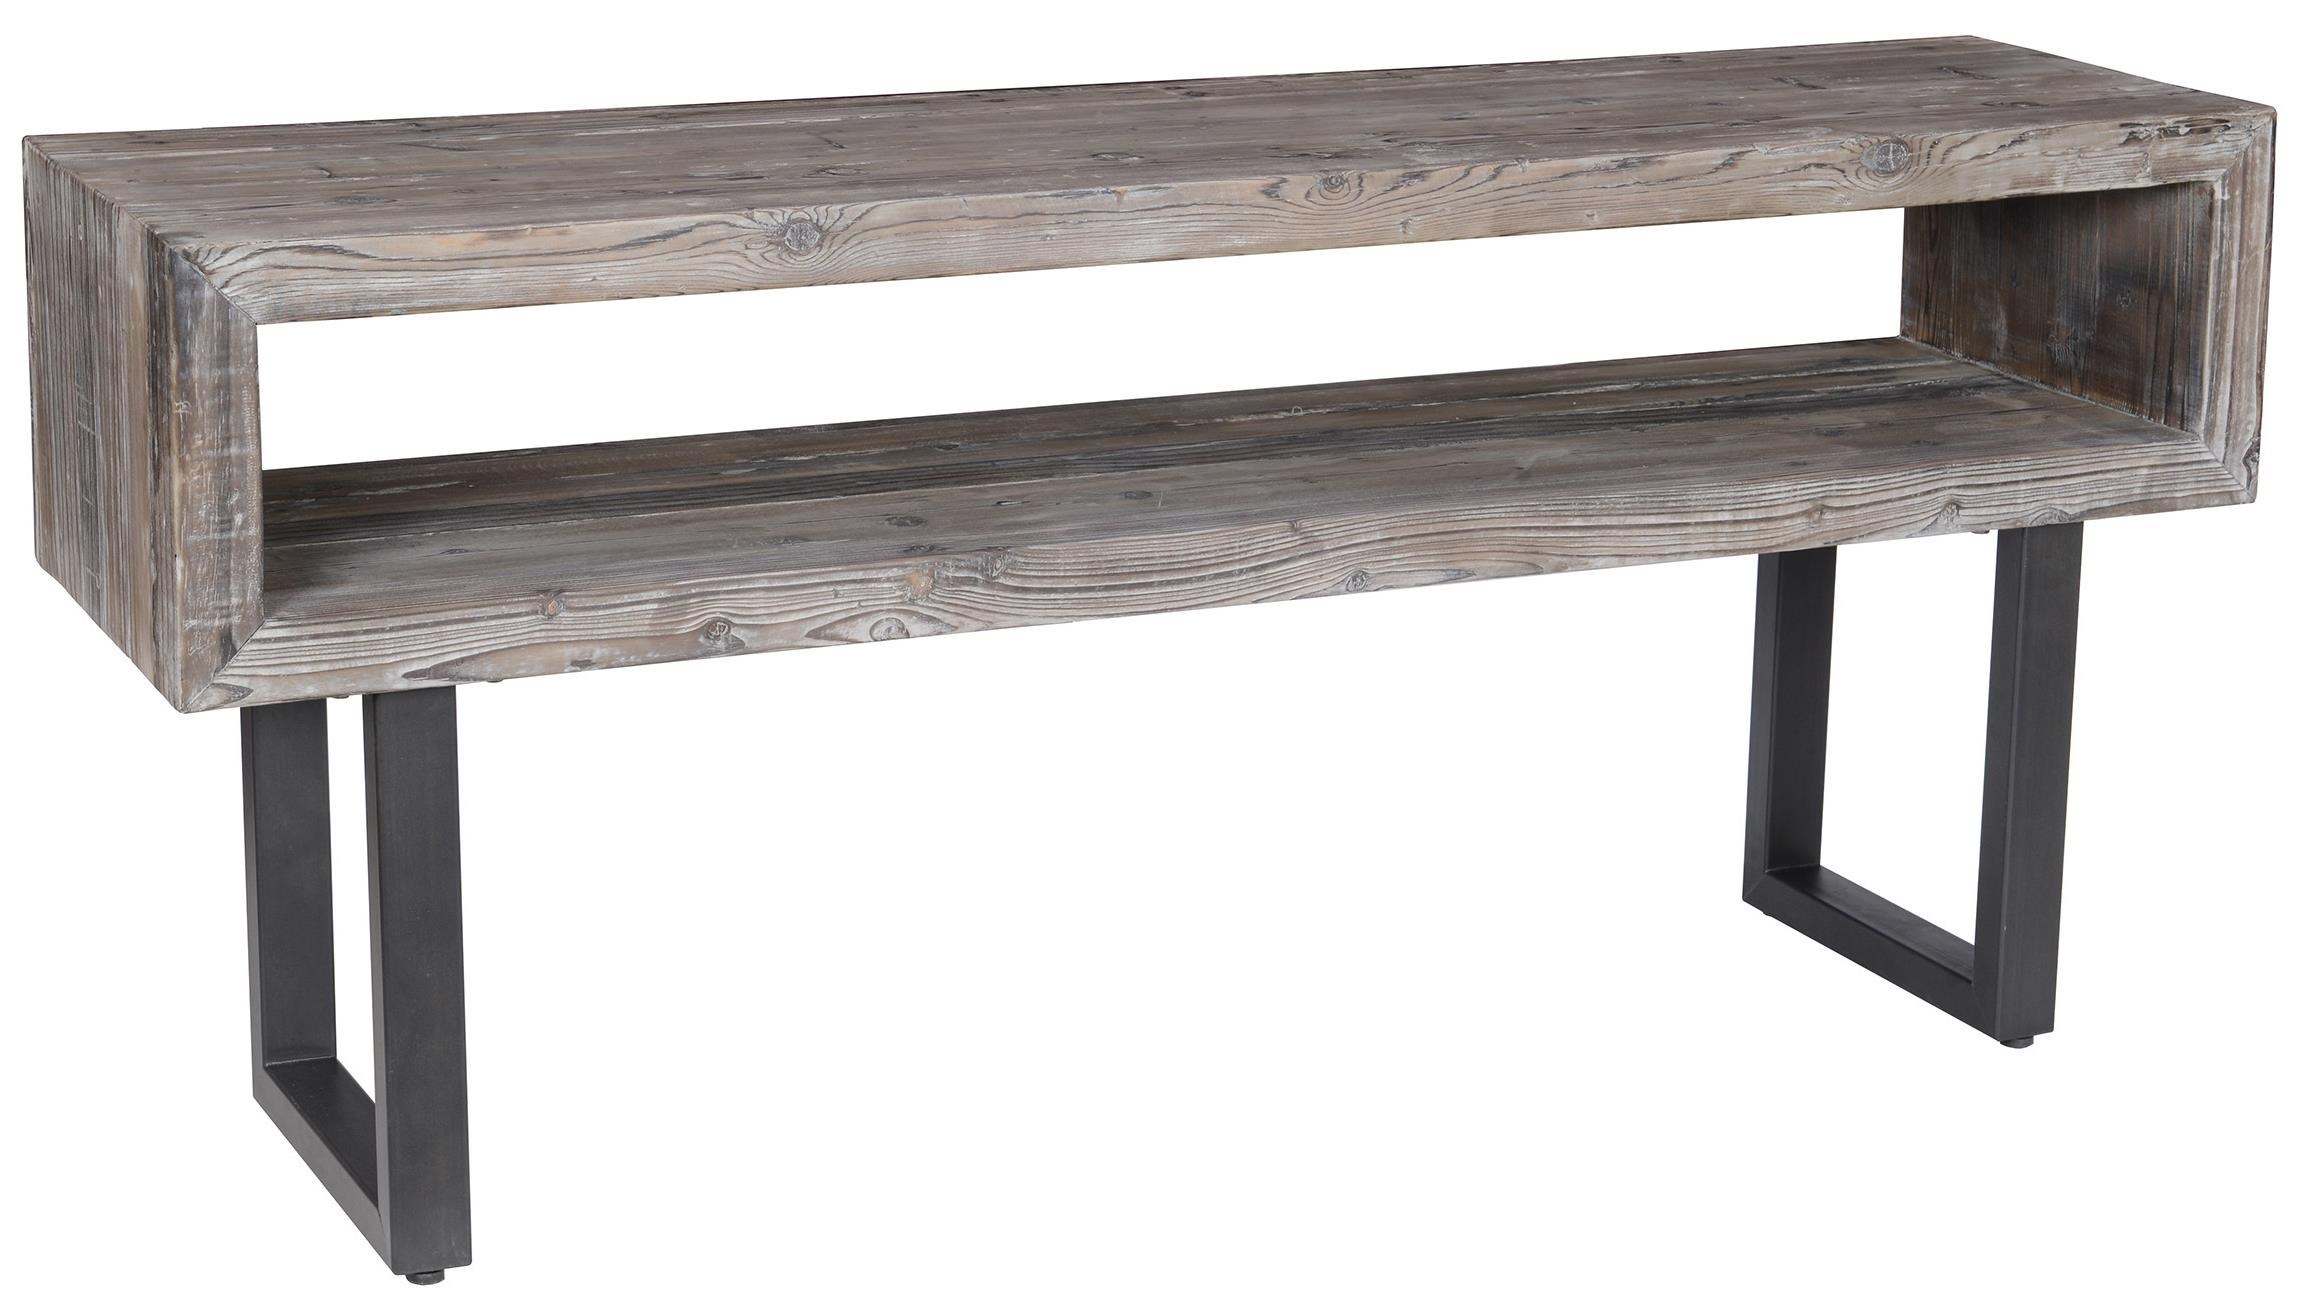 Black console table Half Moon Corsica Console Table With Black Metal Base By Classic Home John Schultz Classic Home Corsica 51030029 Console Table With Black Metal Base